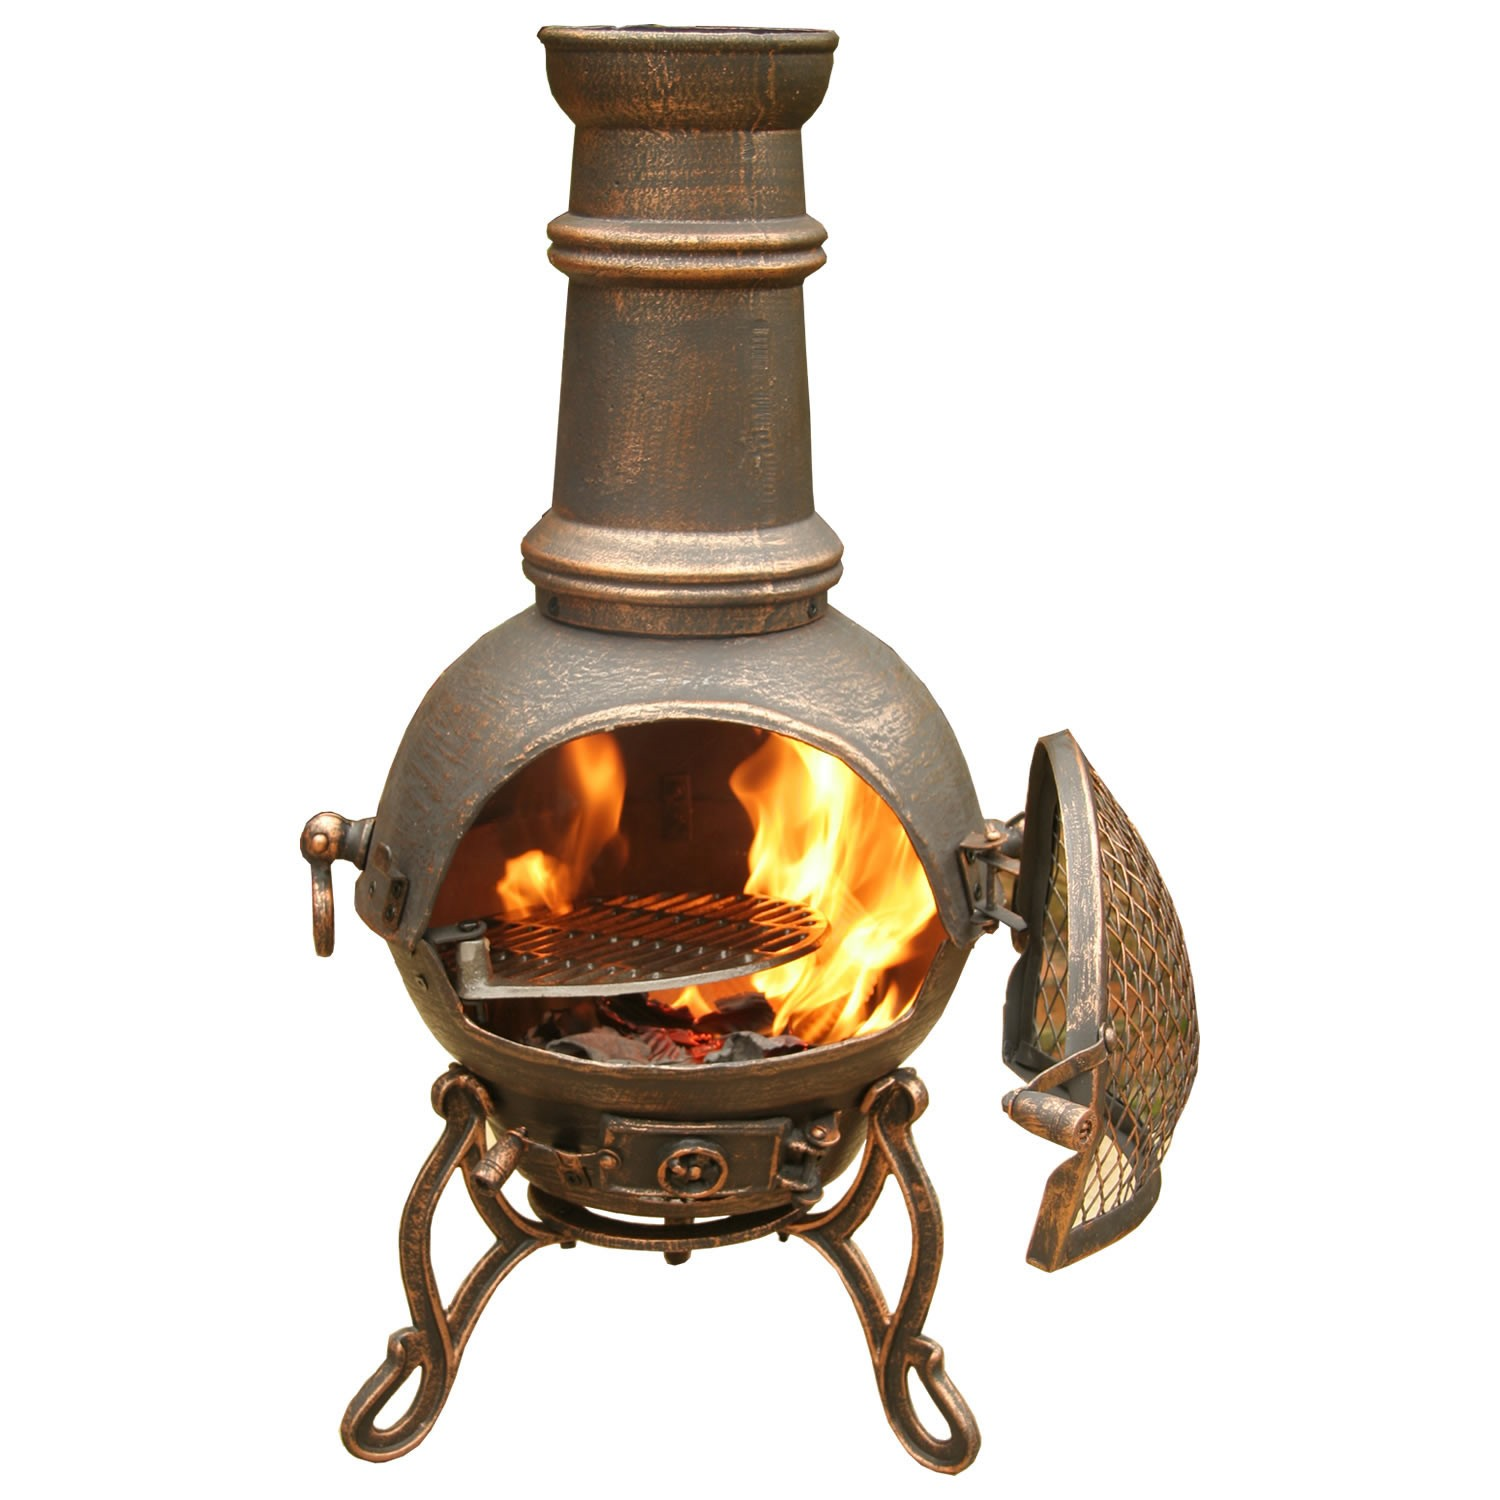 Wonderful Chiminea Outdoor Fireplace For Patio Furniture Ideas: Chiminea Outdoor Fireplace In Unique Design For Patio Furniture Ideas